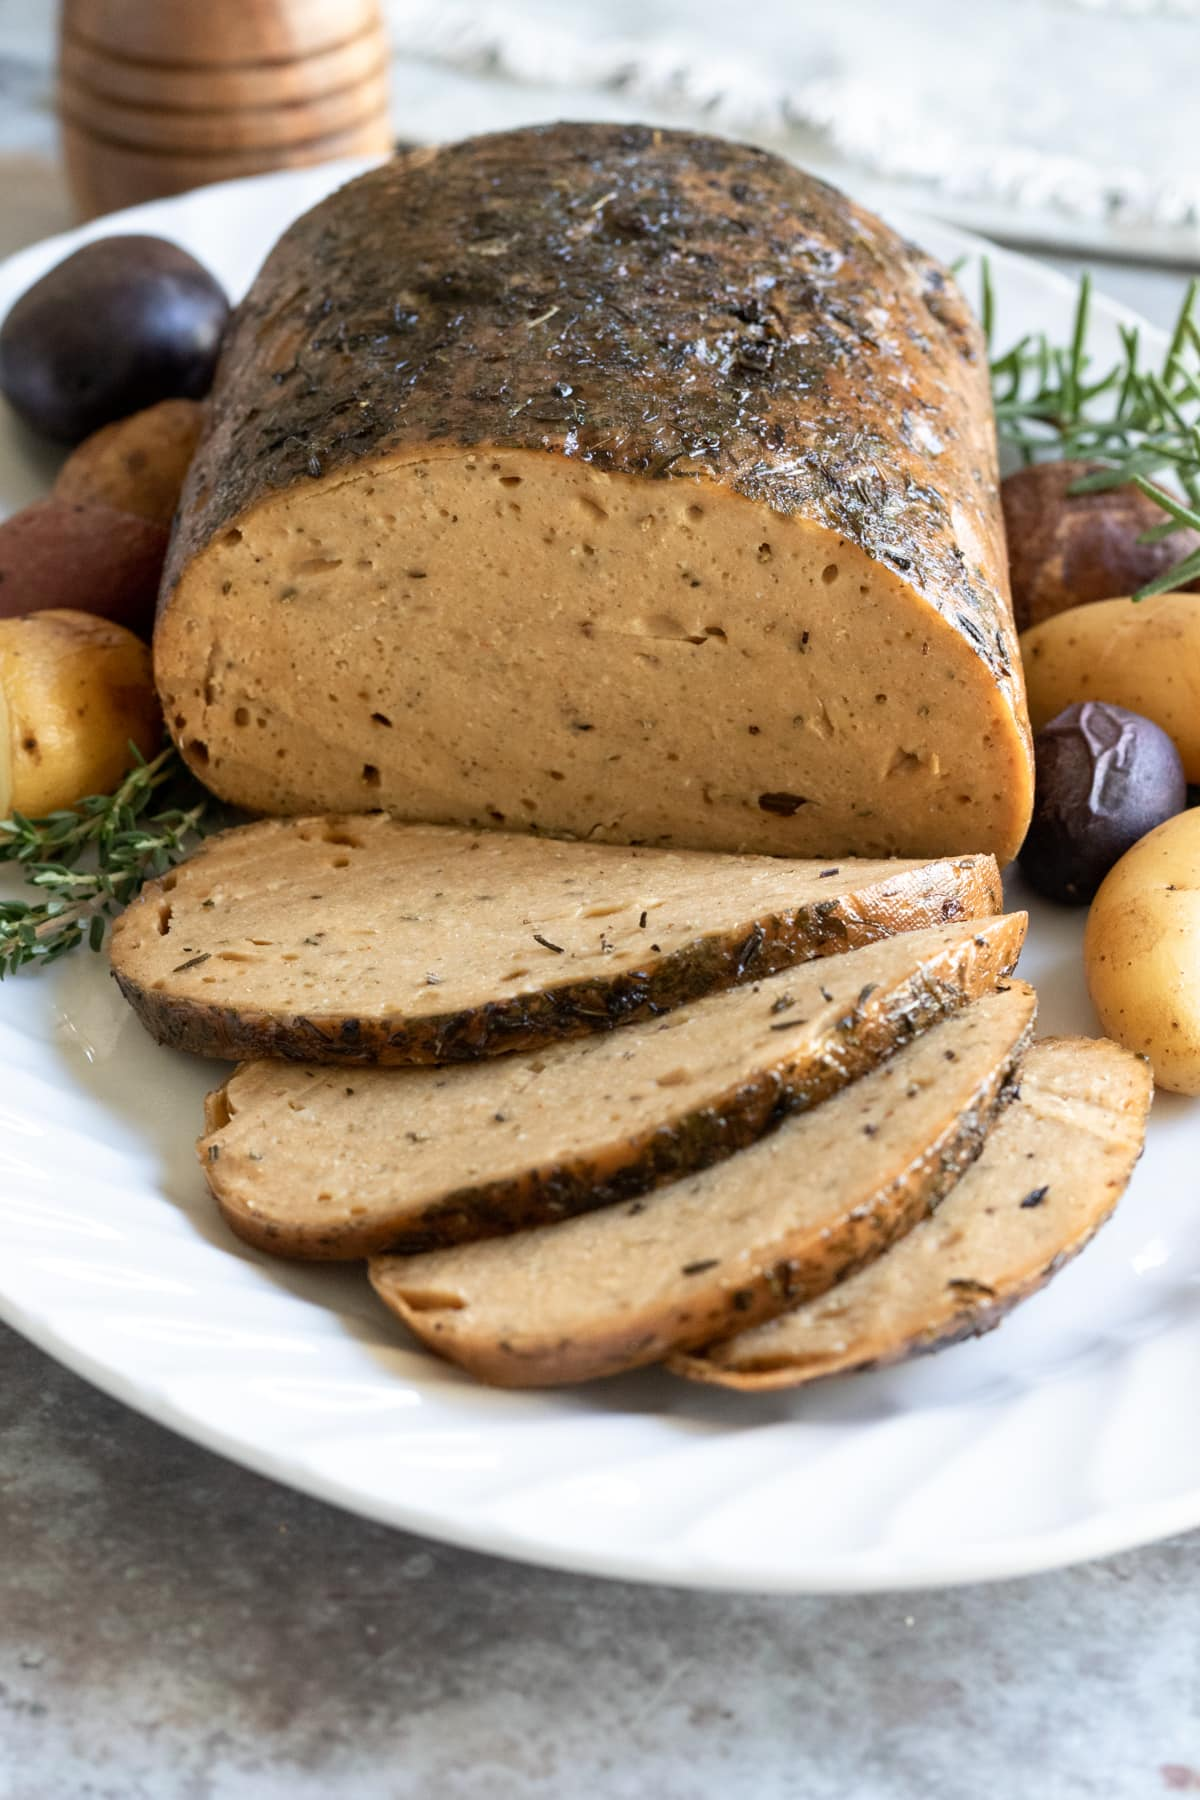 sliced seitan turkey roast on a platter showing the texture of the skin